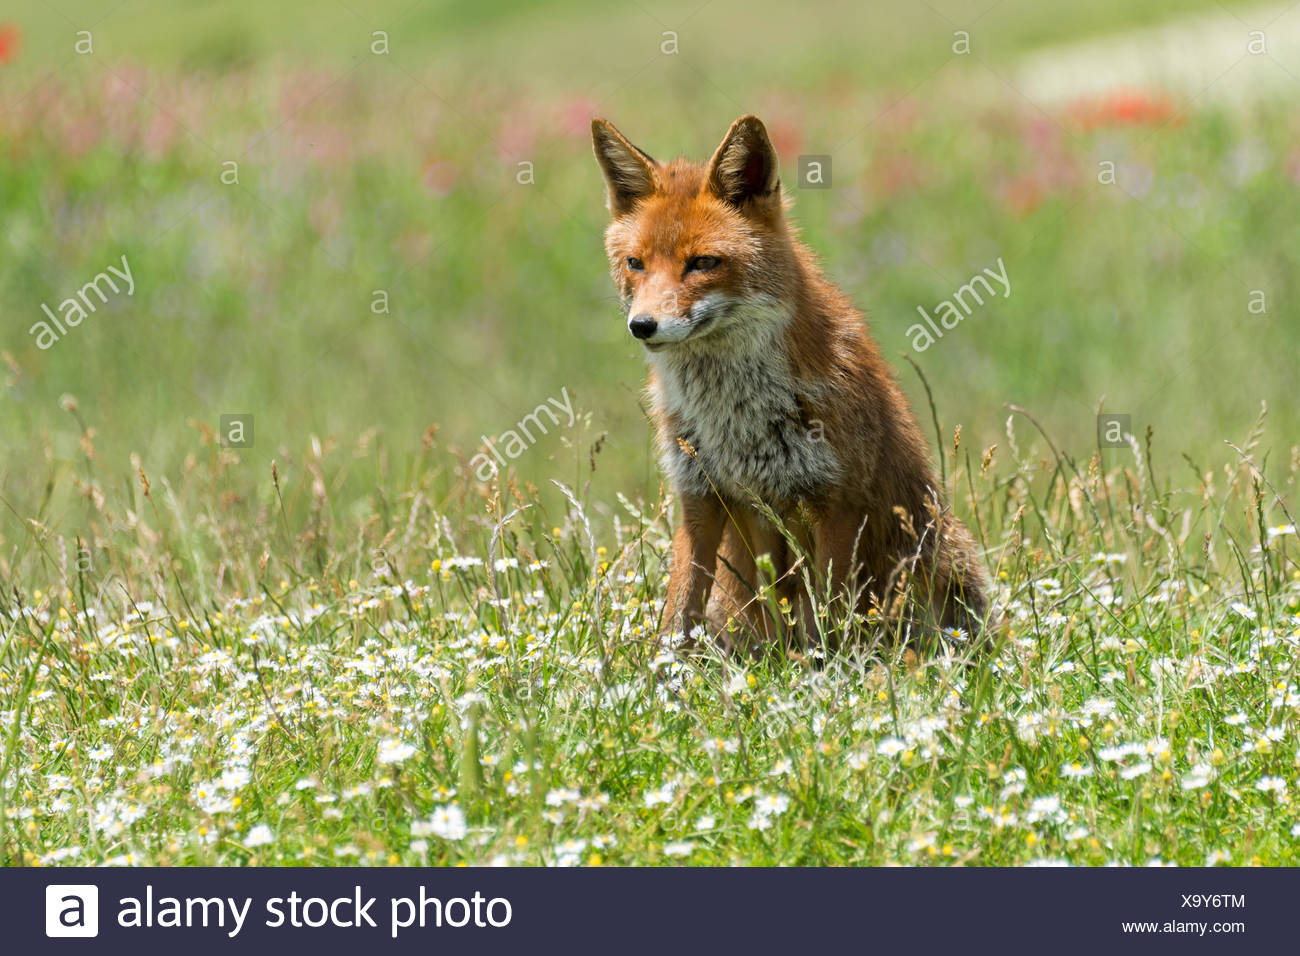 Red Fox (Vulpes vulpes) sitting in flower meadow, Monti Sibillini National Park, Umbria, Italy - Stock Image